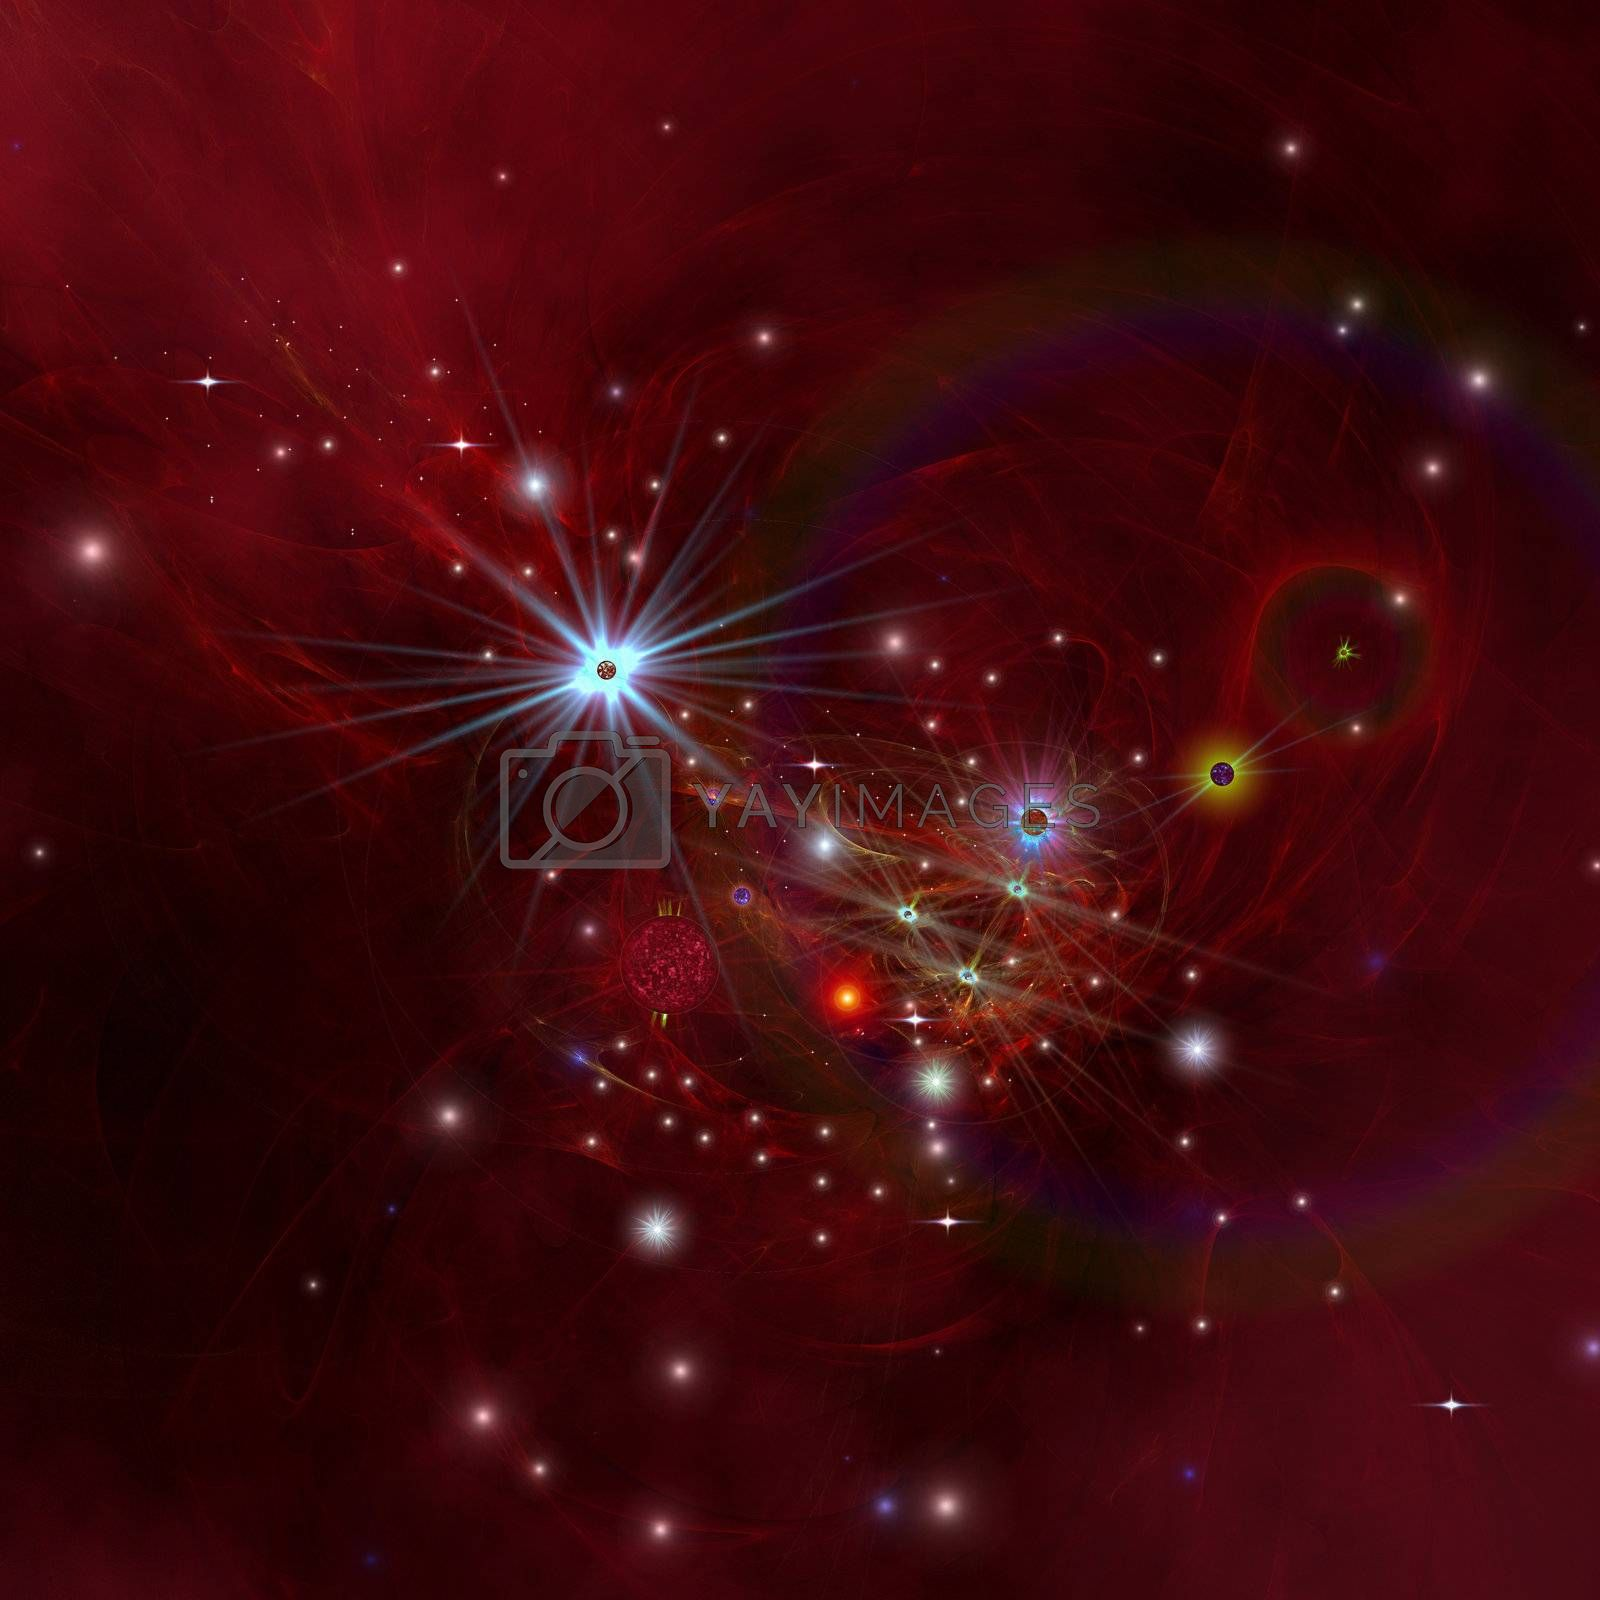 Nebular clouds, gases and stellar matter bring on the birth of stars.